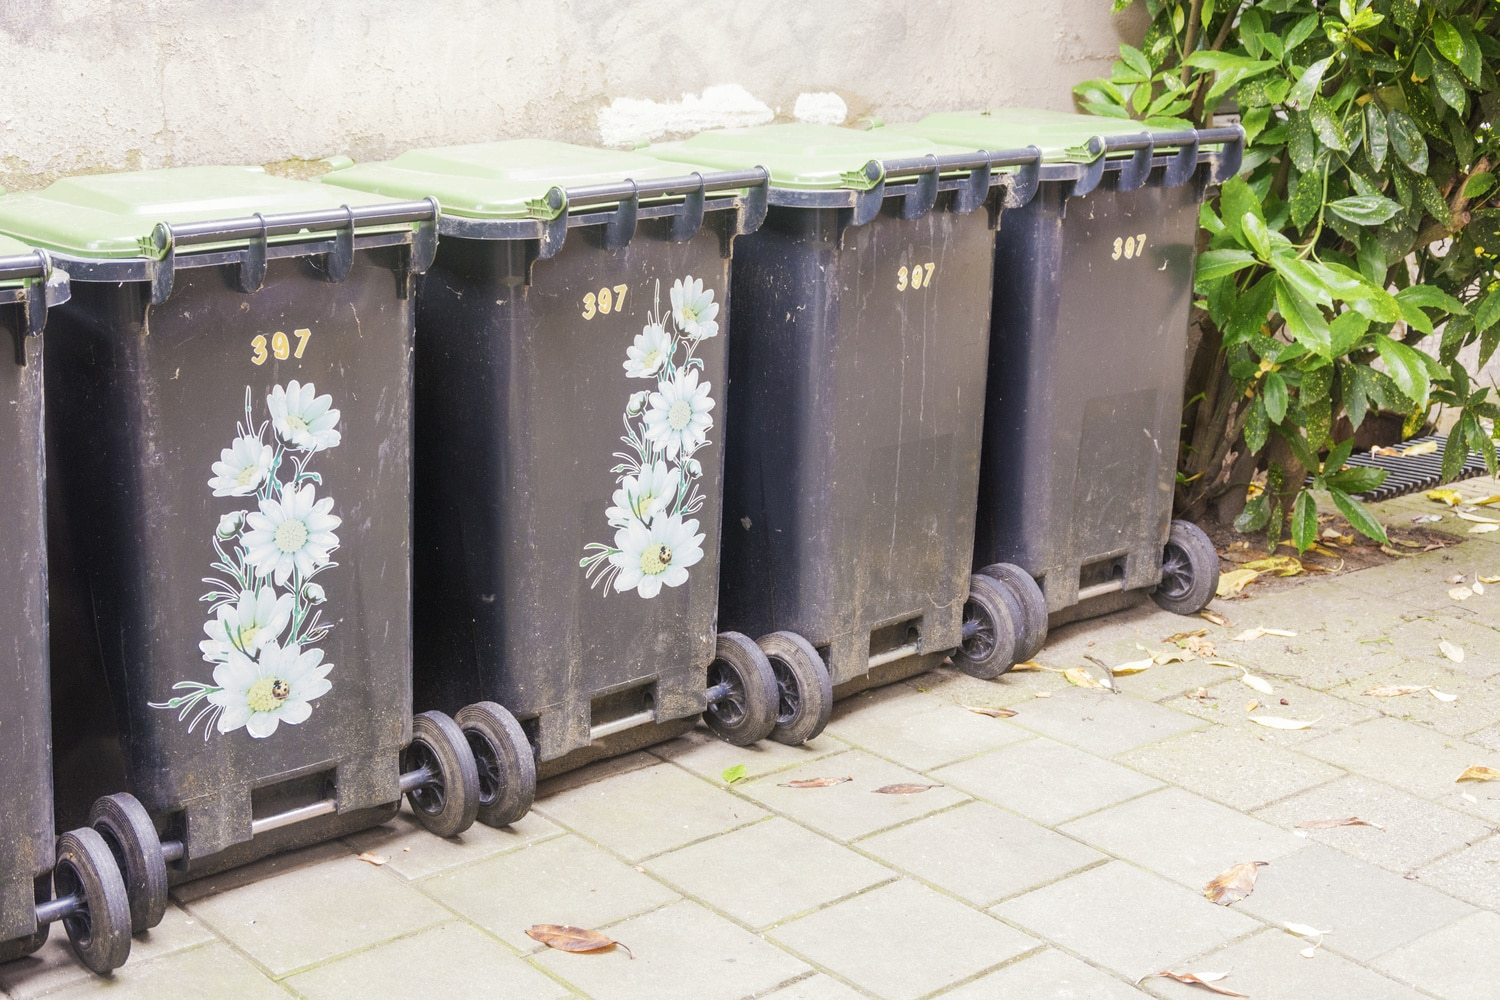 Row of garbage containers, some decorated to make them beautiful, in the city against an old cement wall. A green plant next to the containers as a natural element.